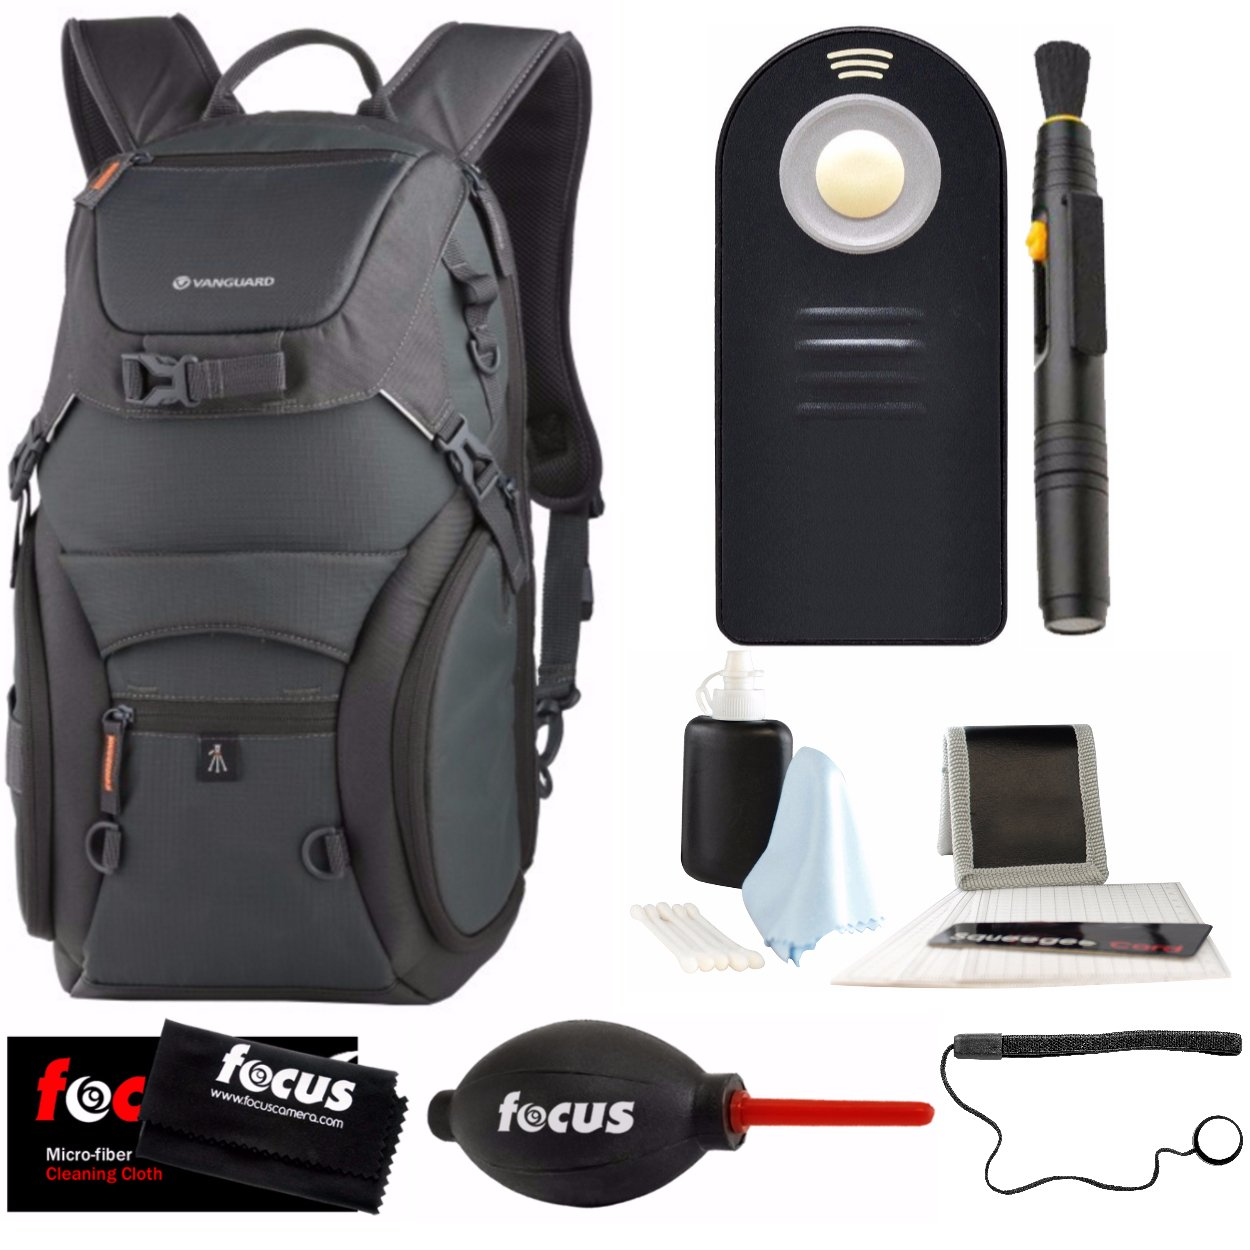 Vanguard Adaptor 46 Daypack Backpack for DSLR Camera Gear & 13-inch Laptop, with Photo Accessories Bundle